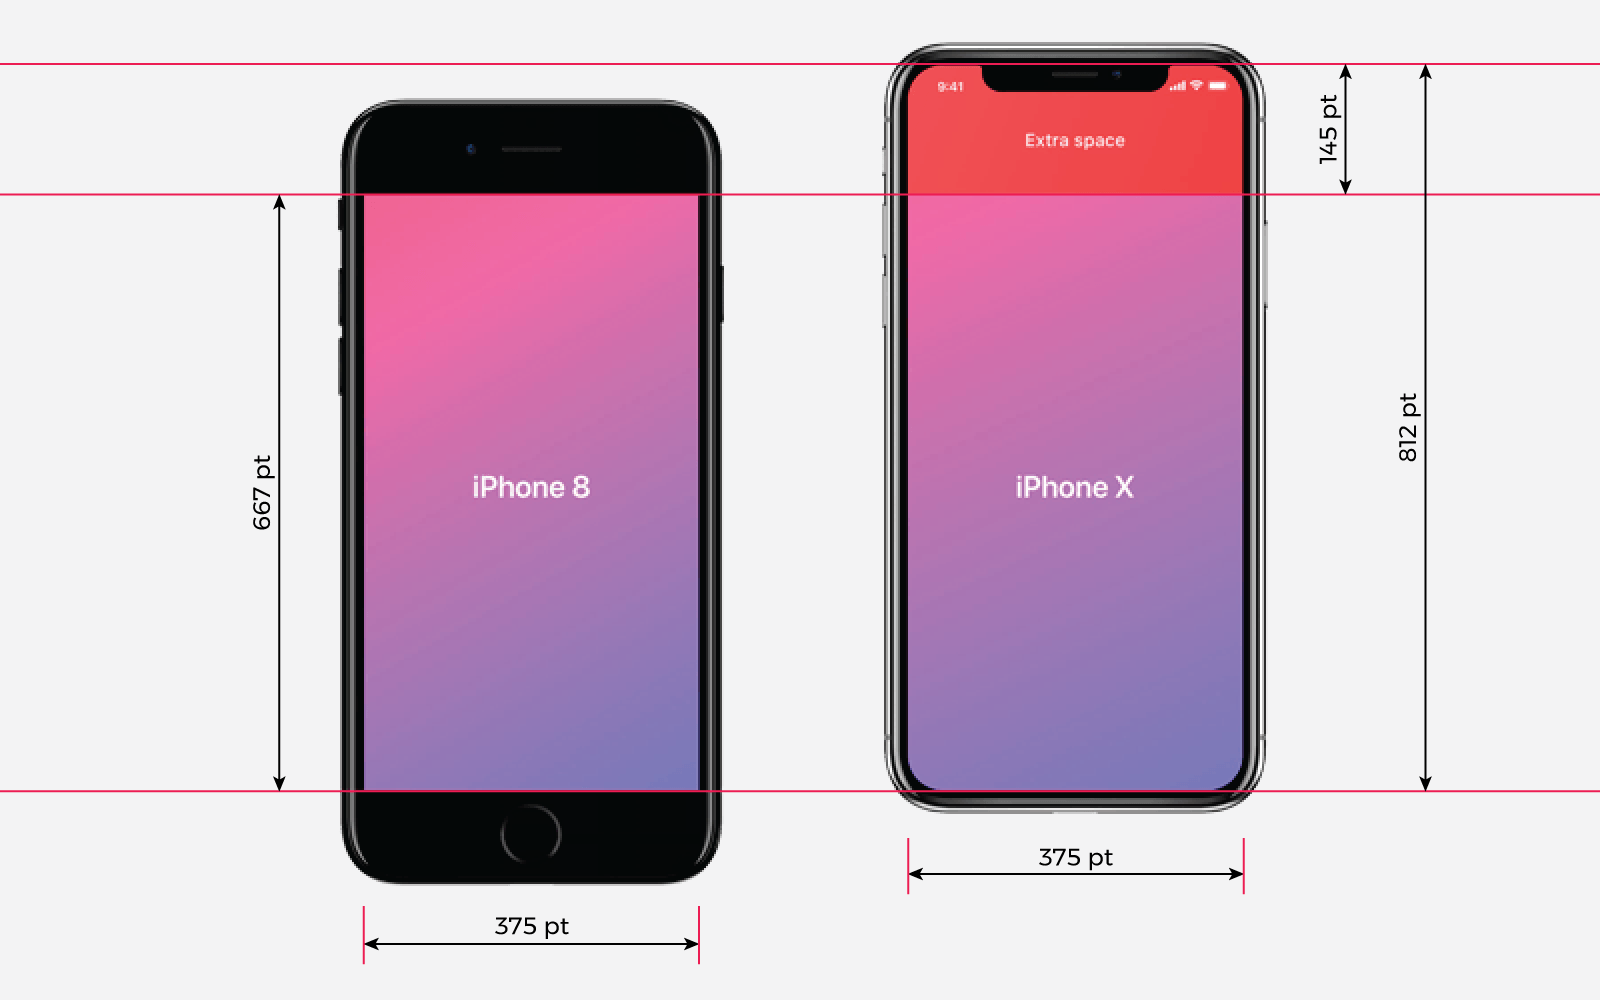 iphone screen dimensions designing for iphone x 9 ways to make your app look neat 5966